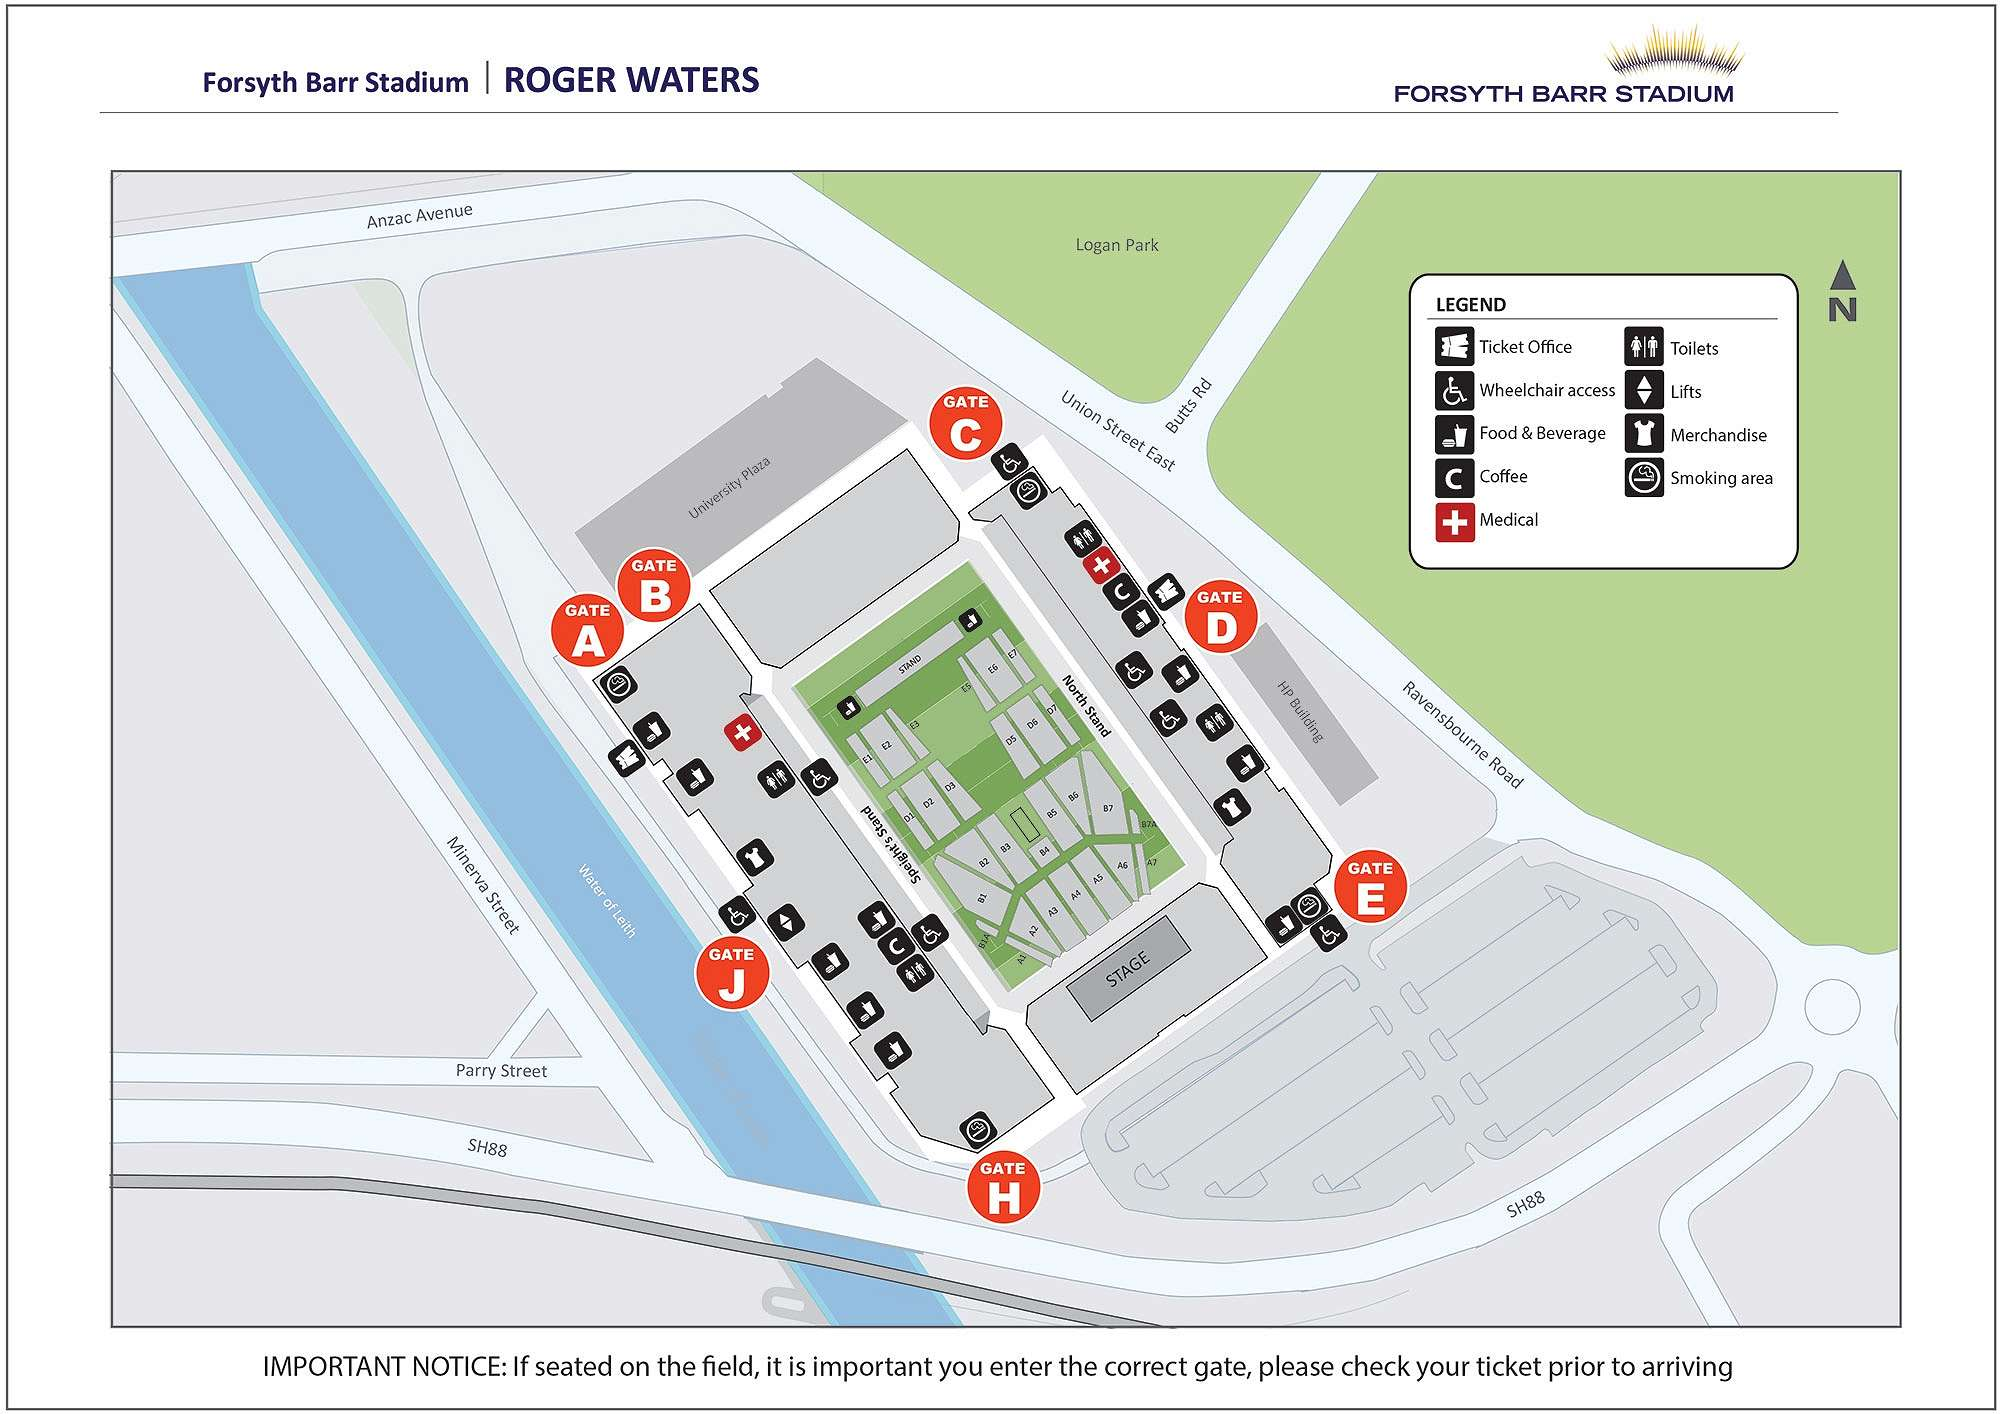 Roger Waters - Venue Map